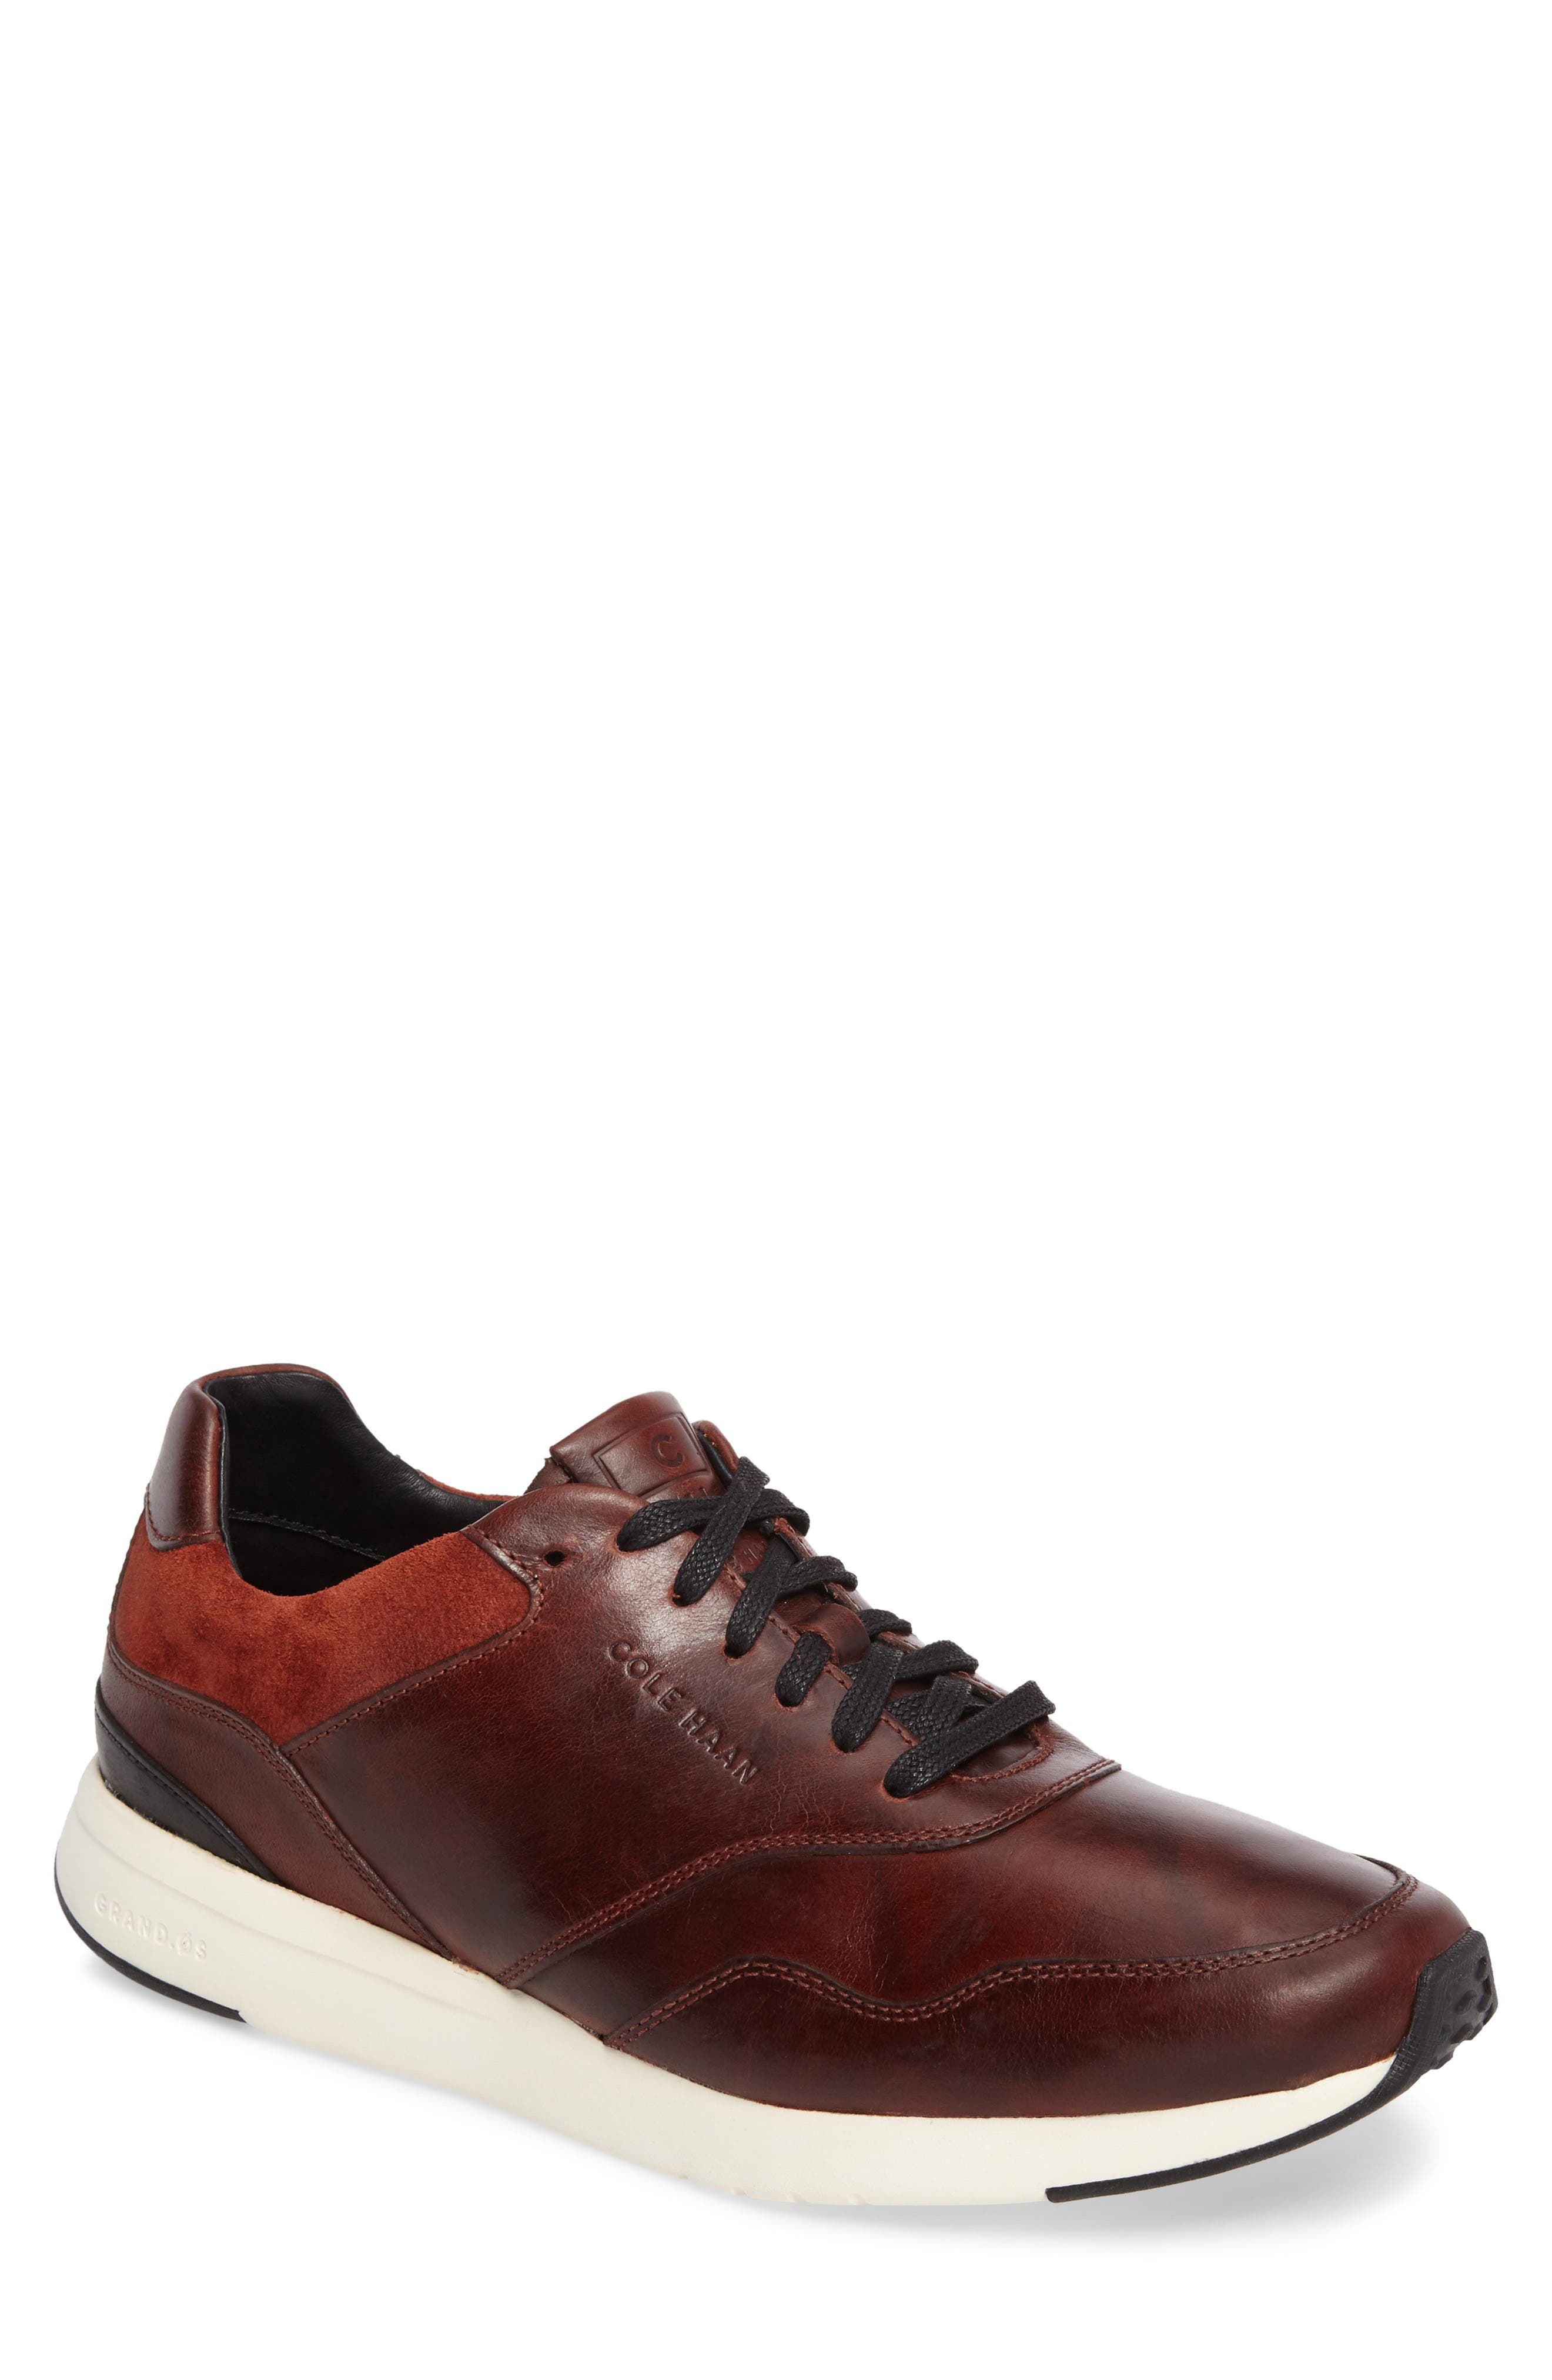 GrandPro Runner Sneaker,                             Main thumbnail 1, color,                             Brandy Pull Up Leather